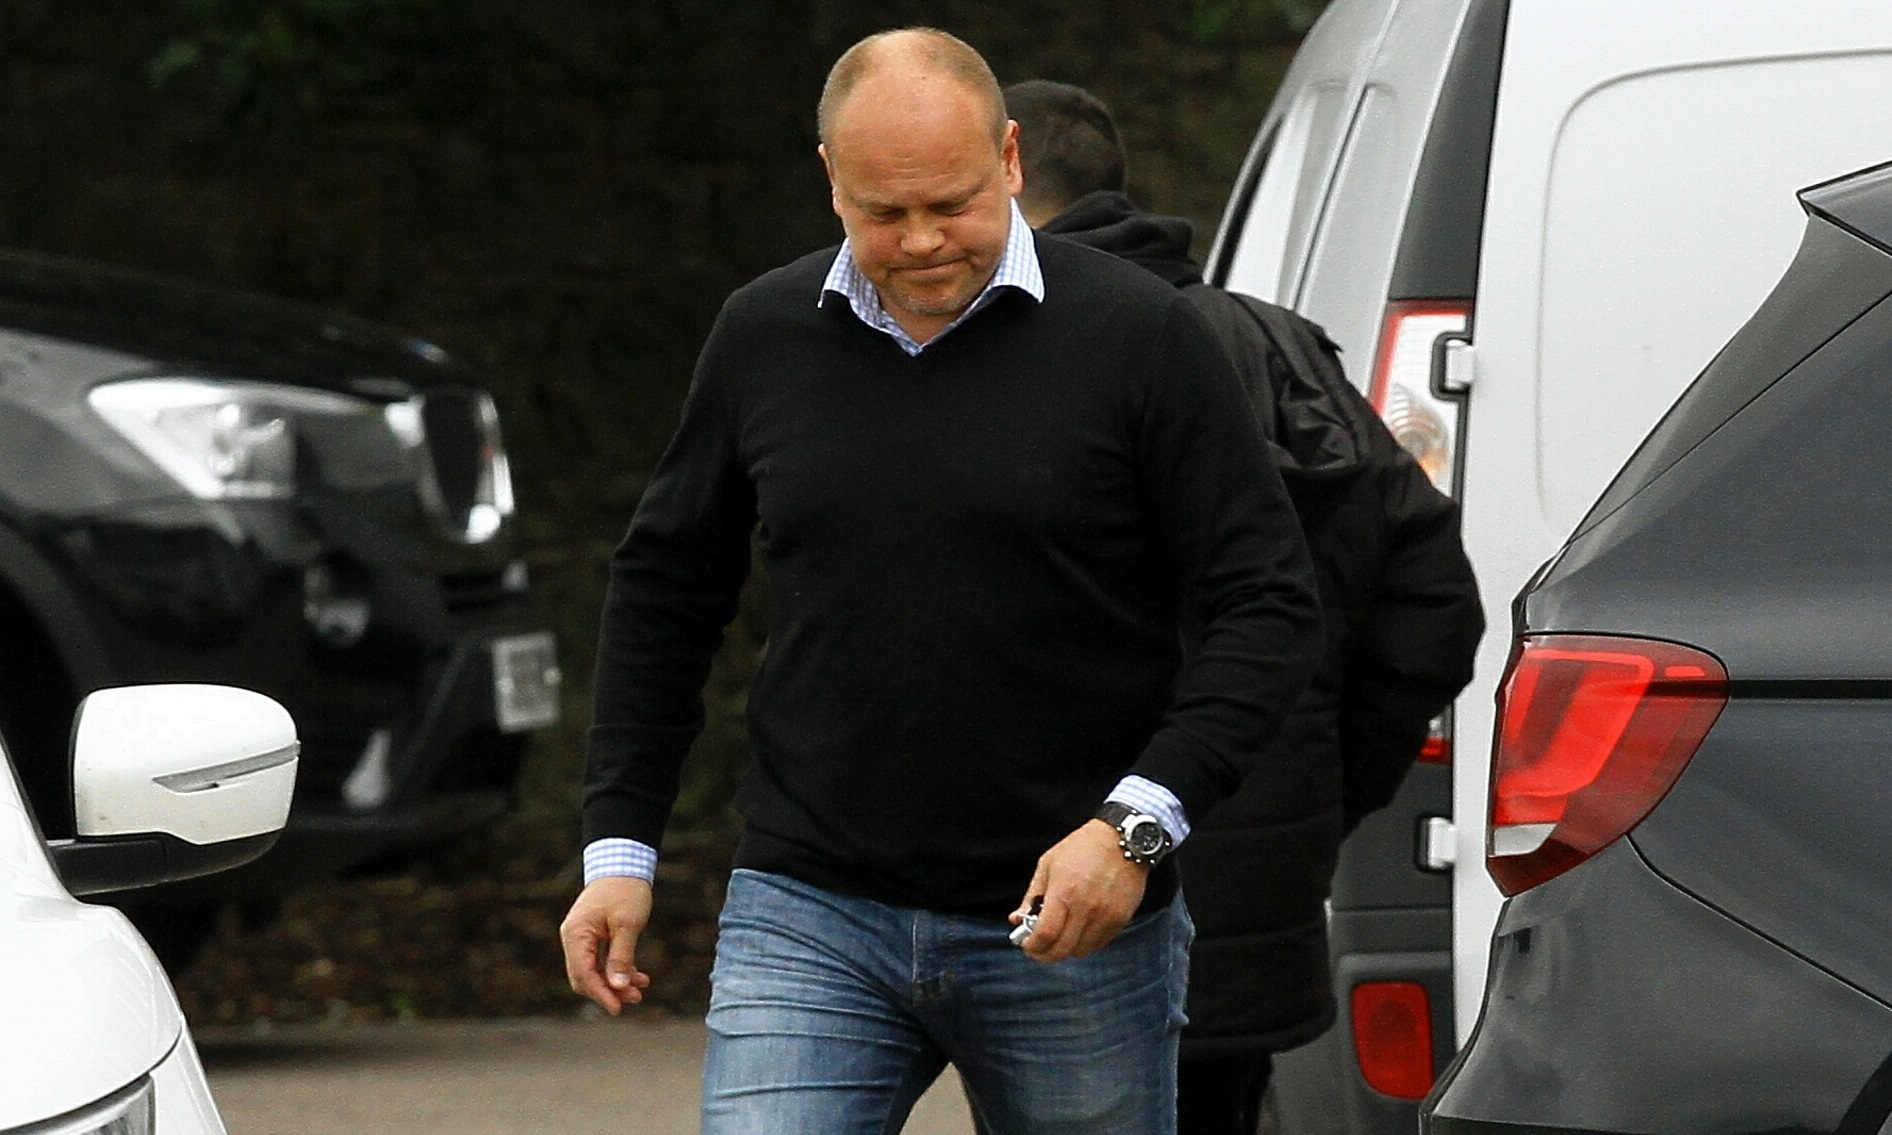 Mixu Paatelainen heads off after saying his goodbyes to the Dundee United squad.